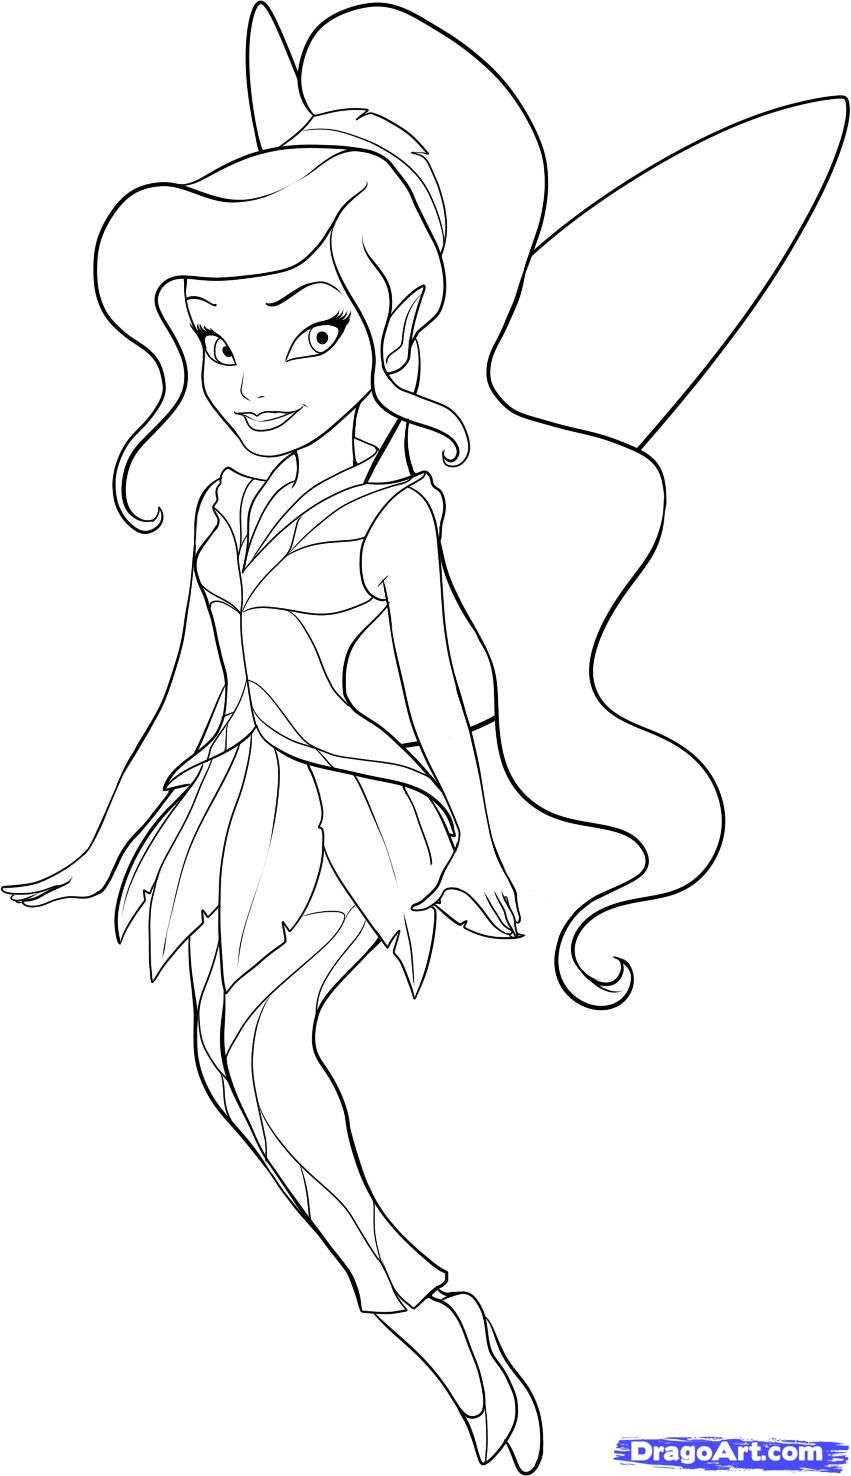 Tinkerbell Vidia Ausmalbilder : Emejing Disney Fairy Vidia Coloring Pages Gallery New Coloring